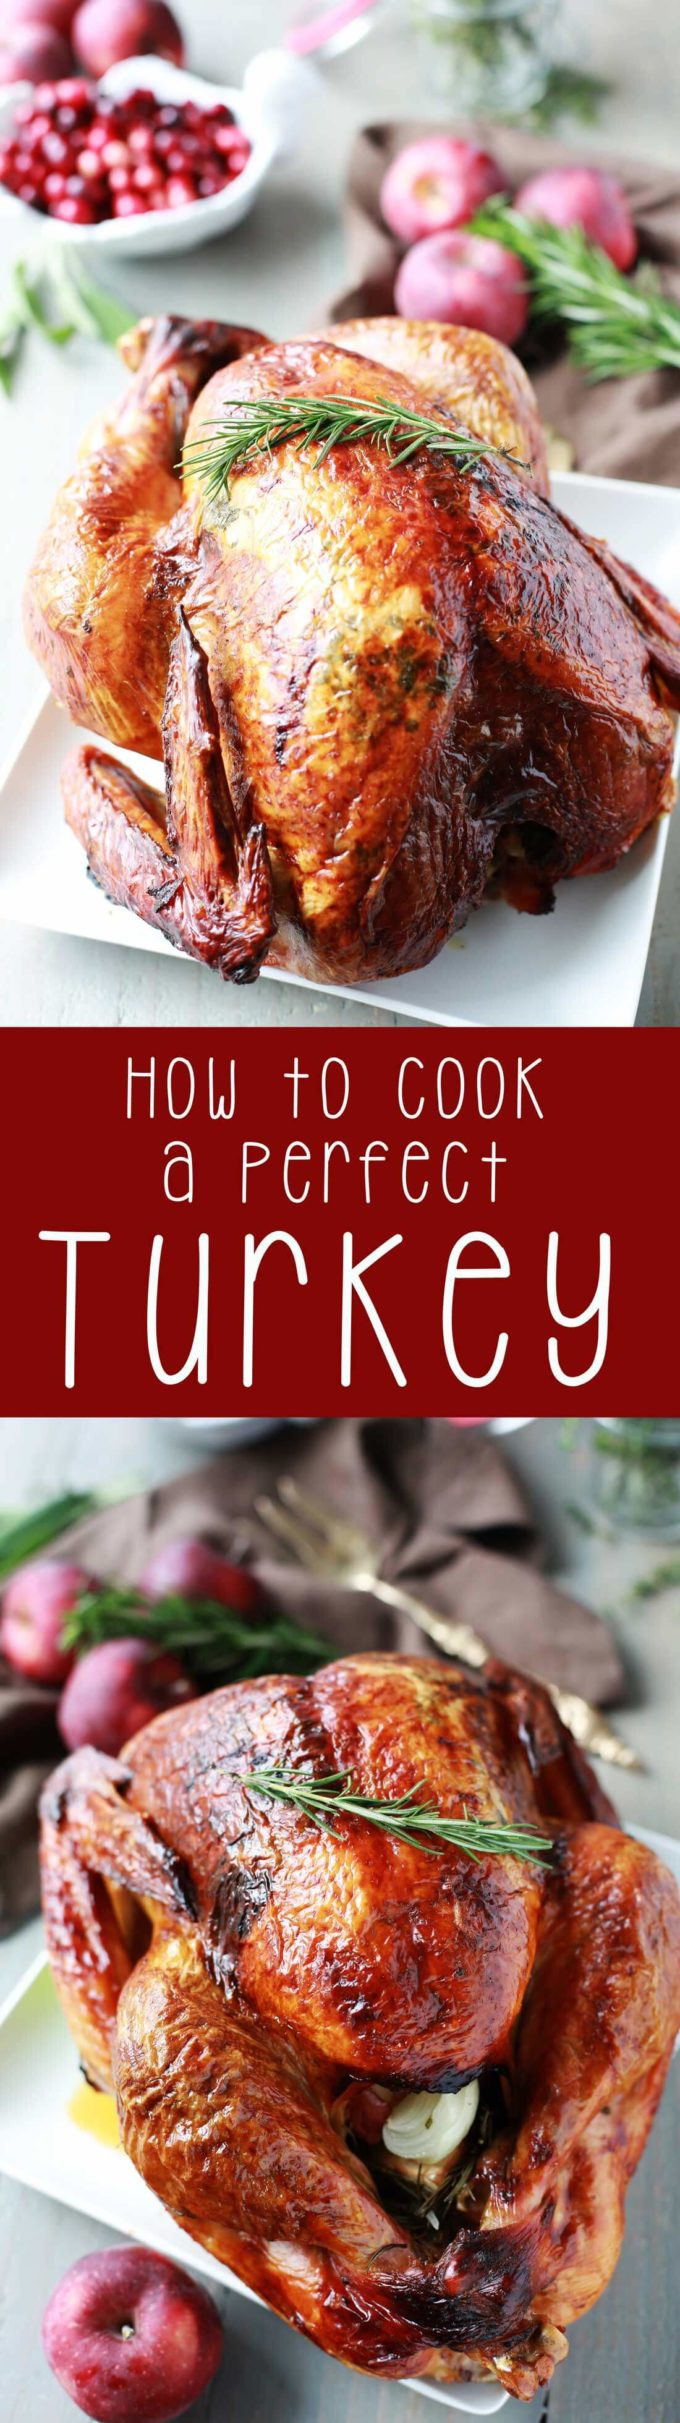 Prepare Thanksgiving Turkey  How to Cook a Perfect Turkey Eazy Peazy Mealz